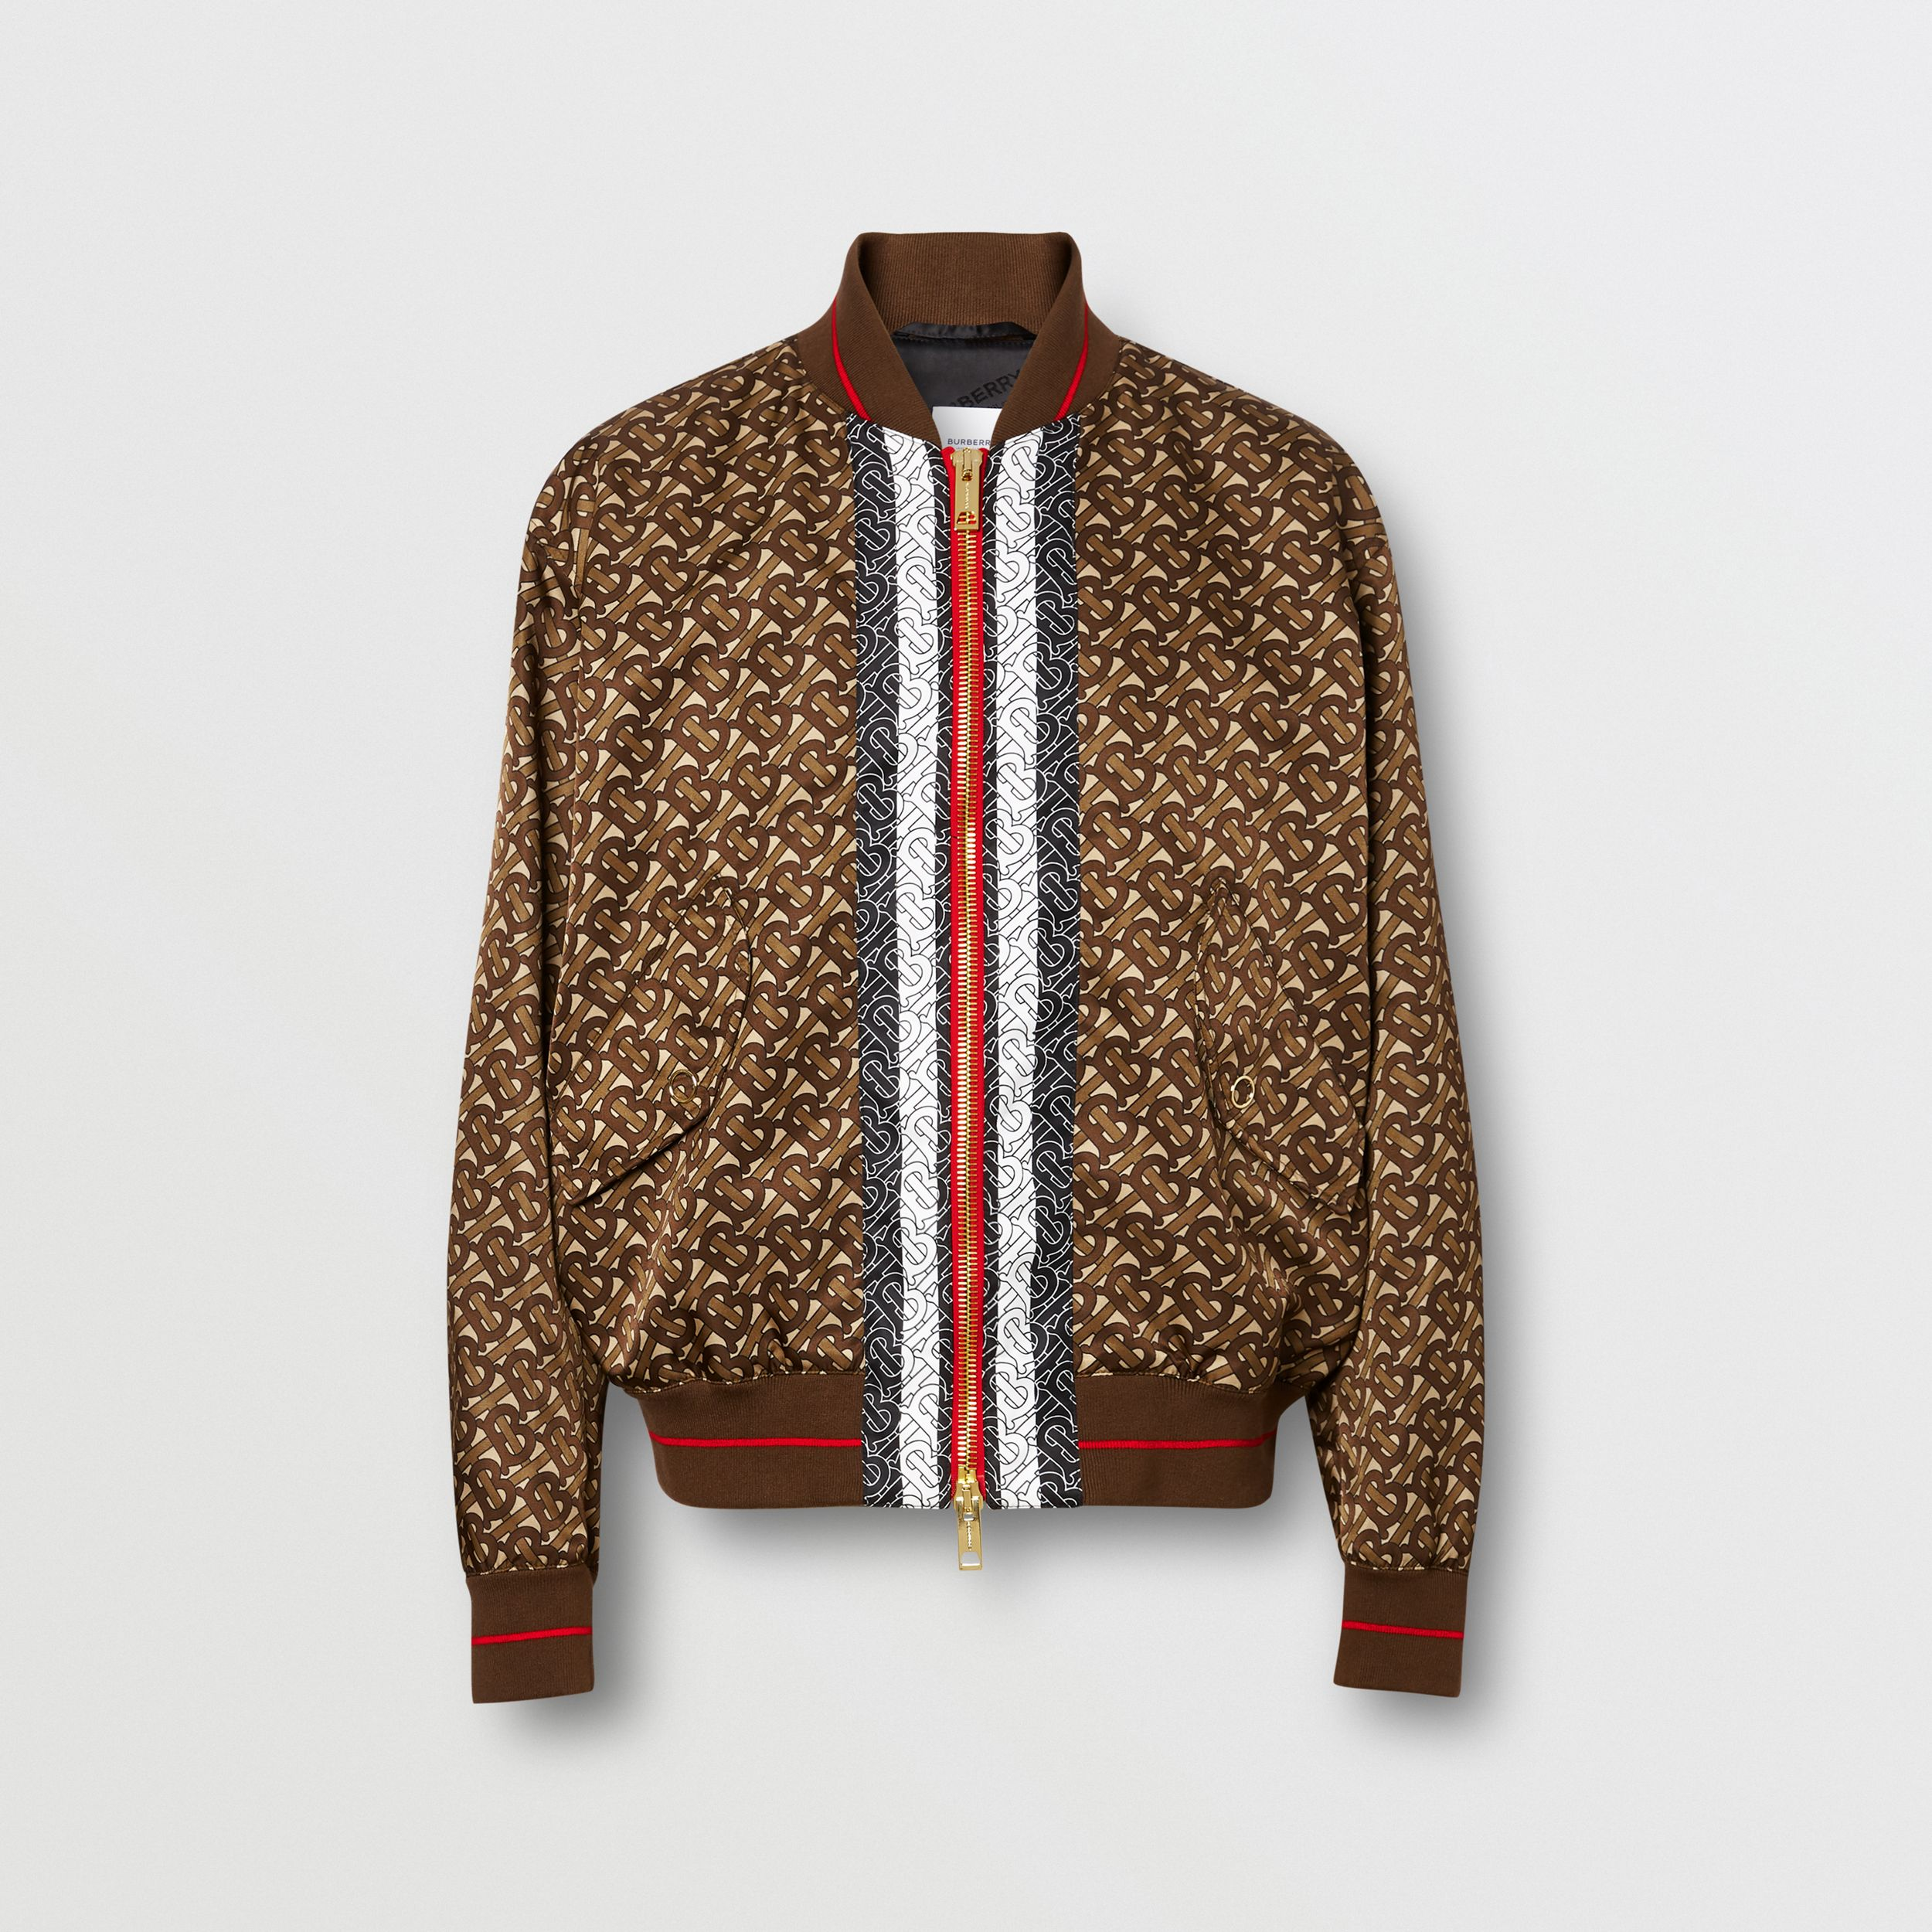 Monogram Stripe Print Nylon Bomber Jacket in Bridle Brown - Men | Burberry - 4